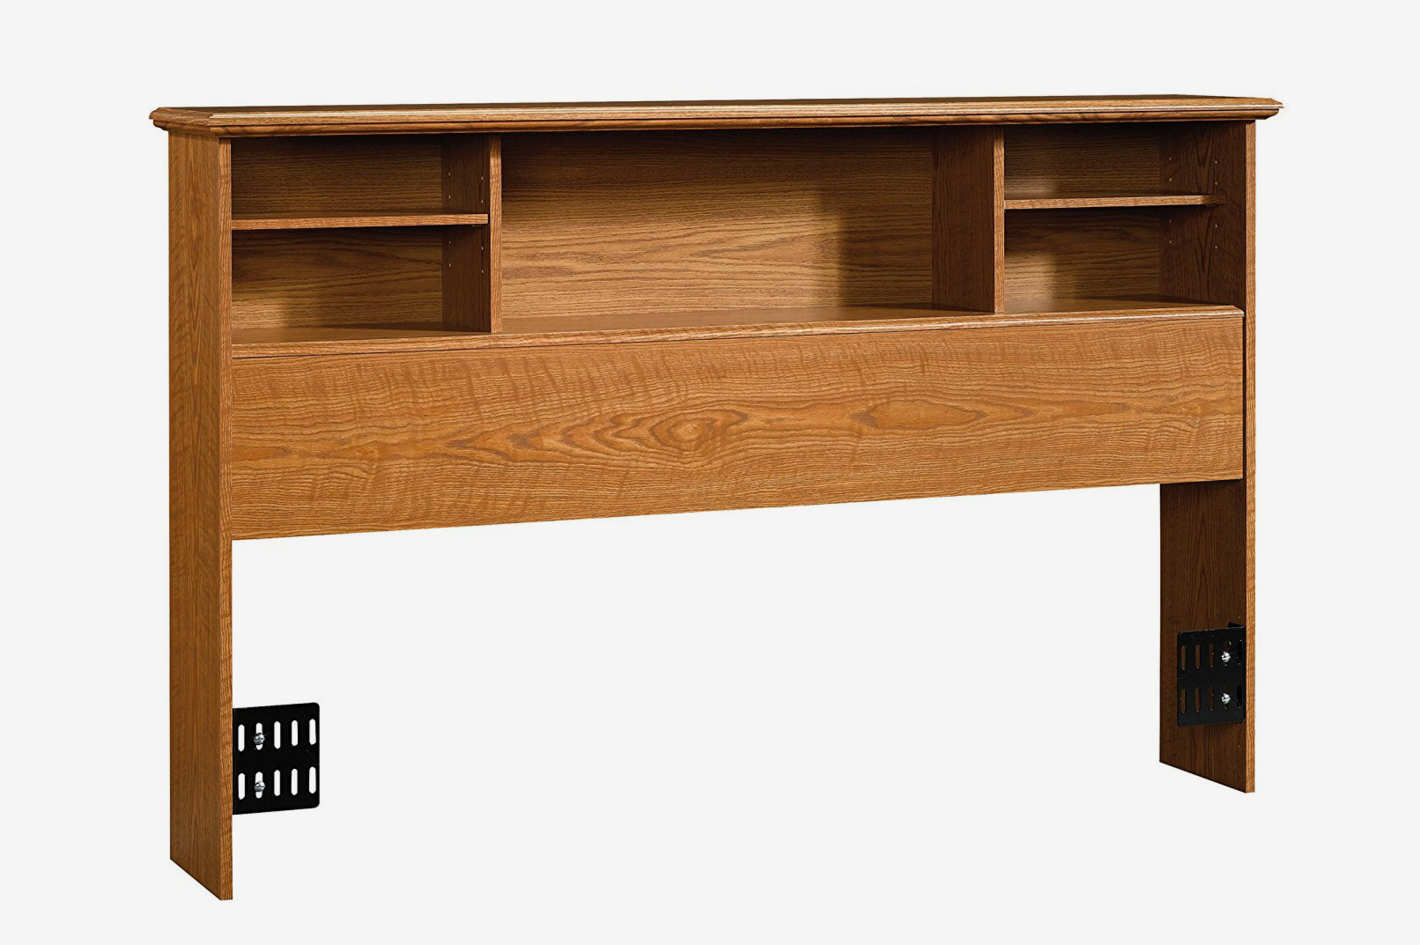 Sauder Orchard Hills Bookcase Headboard in Carolina Oak